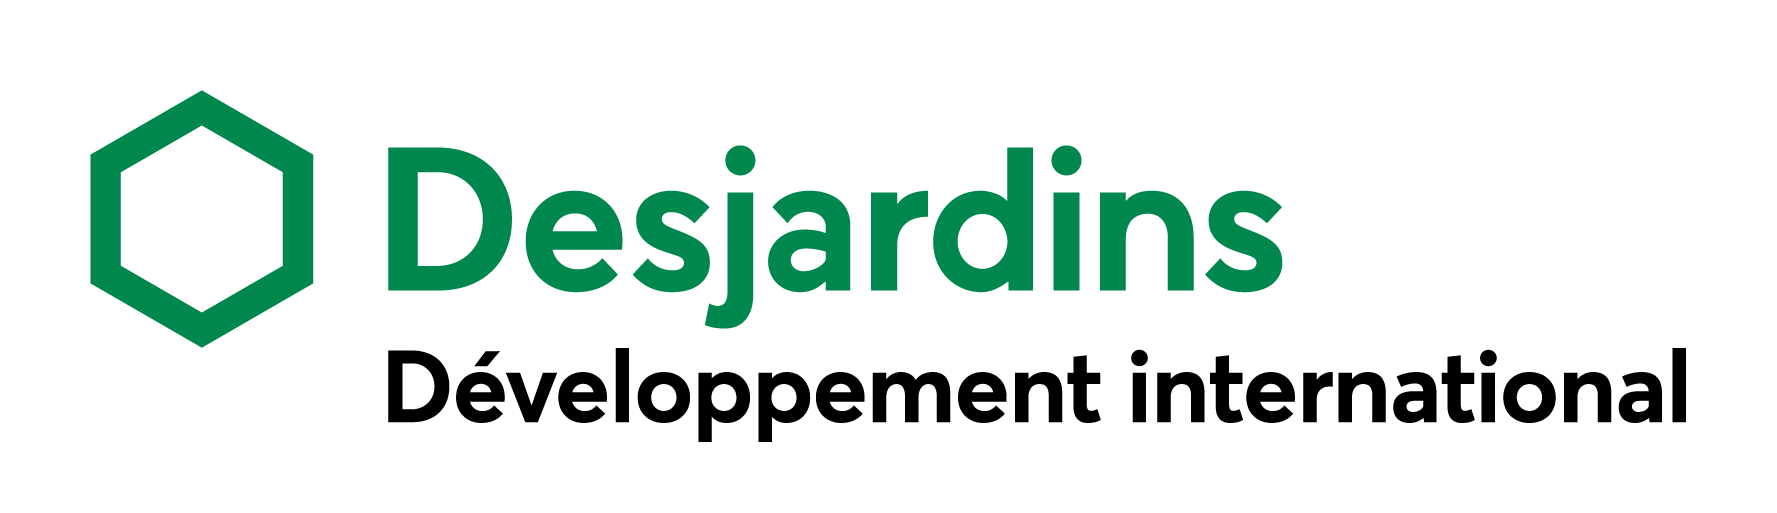 Logo Développement international Desjardins – couleur